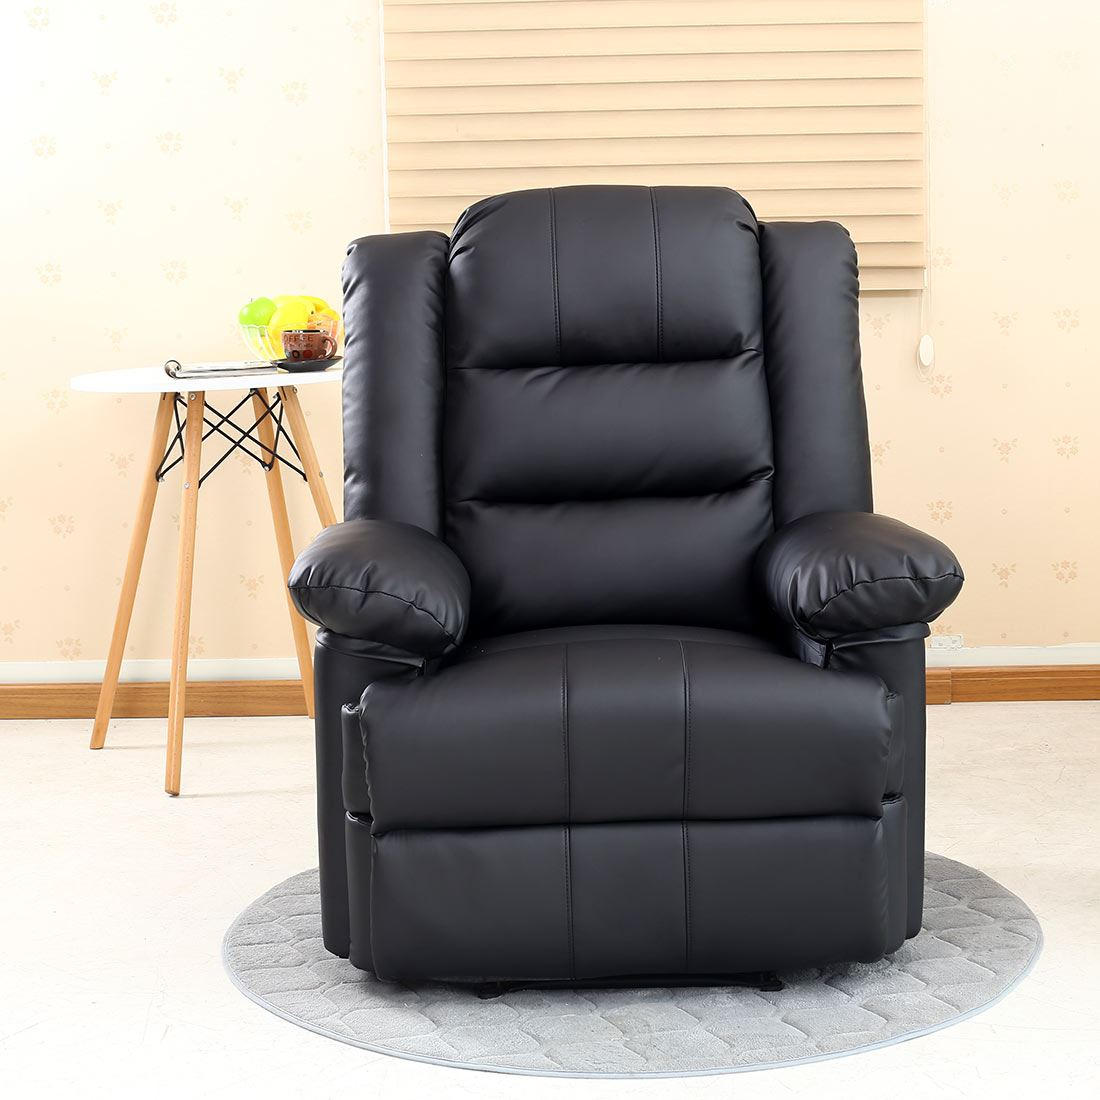 reclining gaming chair the perfect sleep from first street reviews loxley leather recliner armchair sofa home lounge